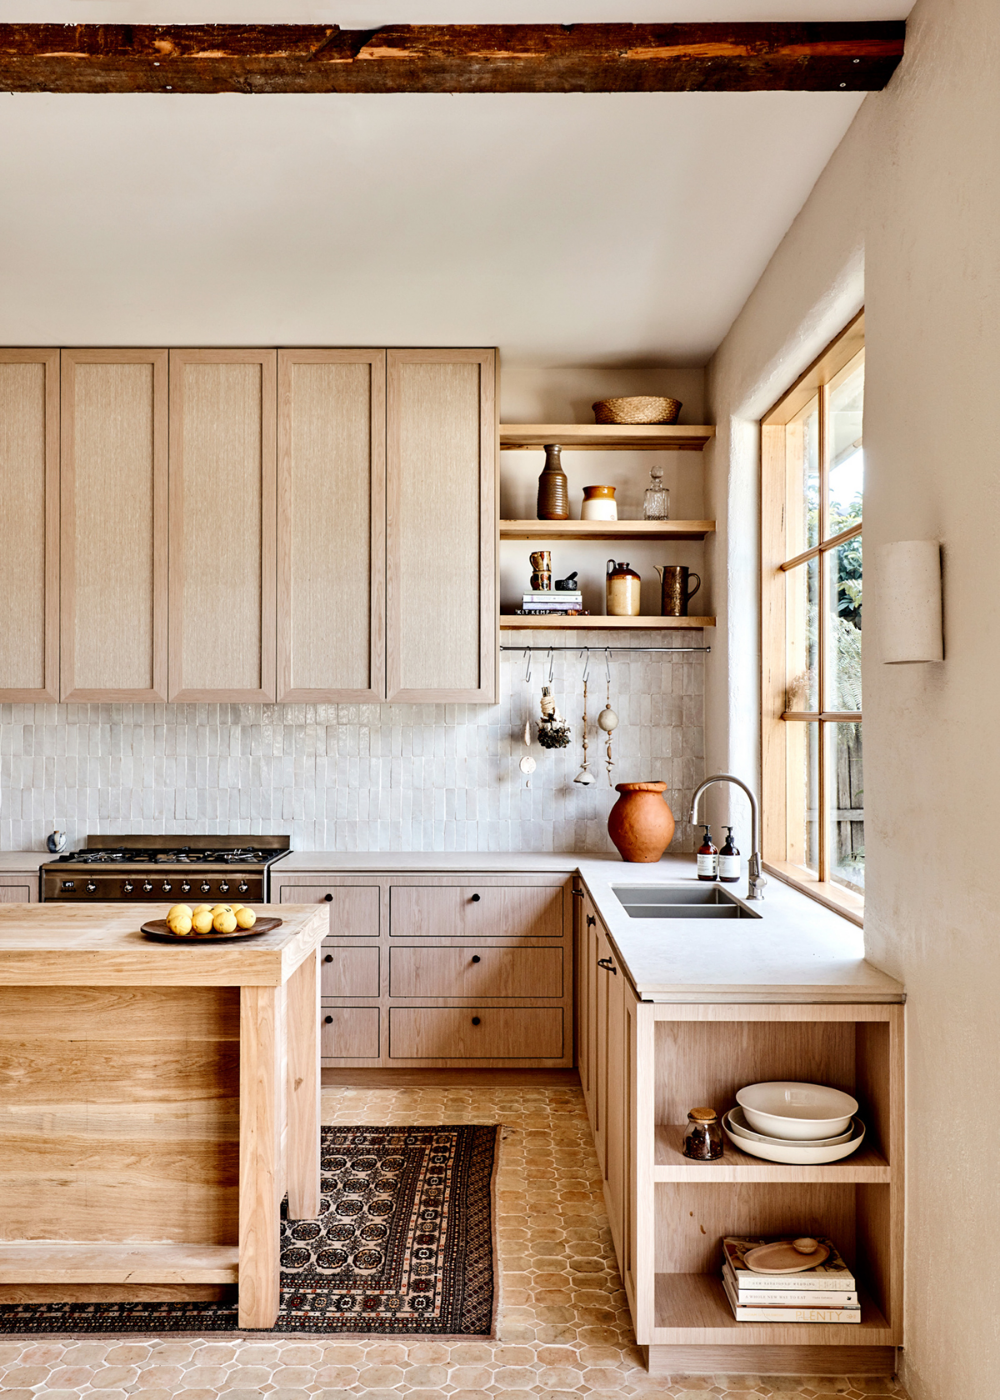 This Warm Wood Kitchen Punctuated By Moroccan Tile And Accents Brings So Much Inspiration In The Wa In 2020 Rustic Modern Kitchen Home Decor Kitchen Kitchen Interior